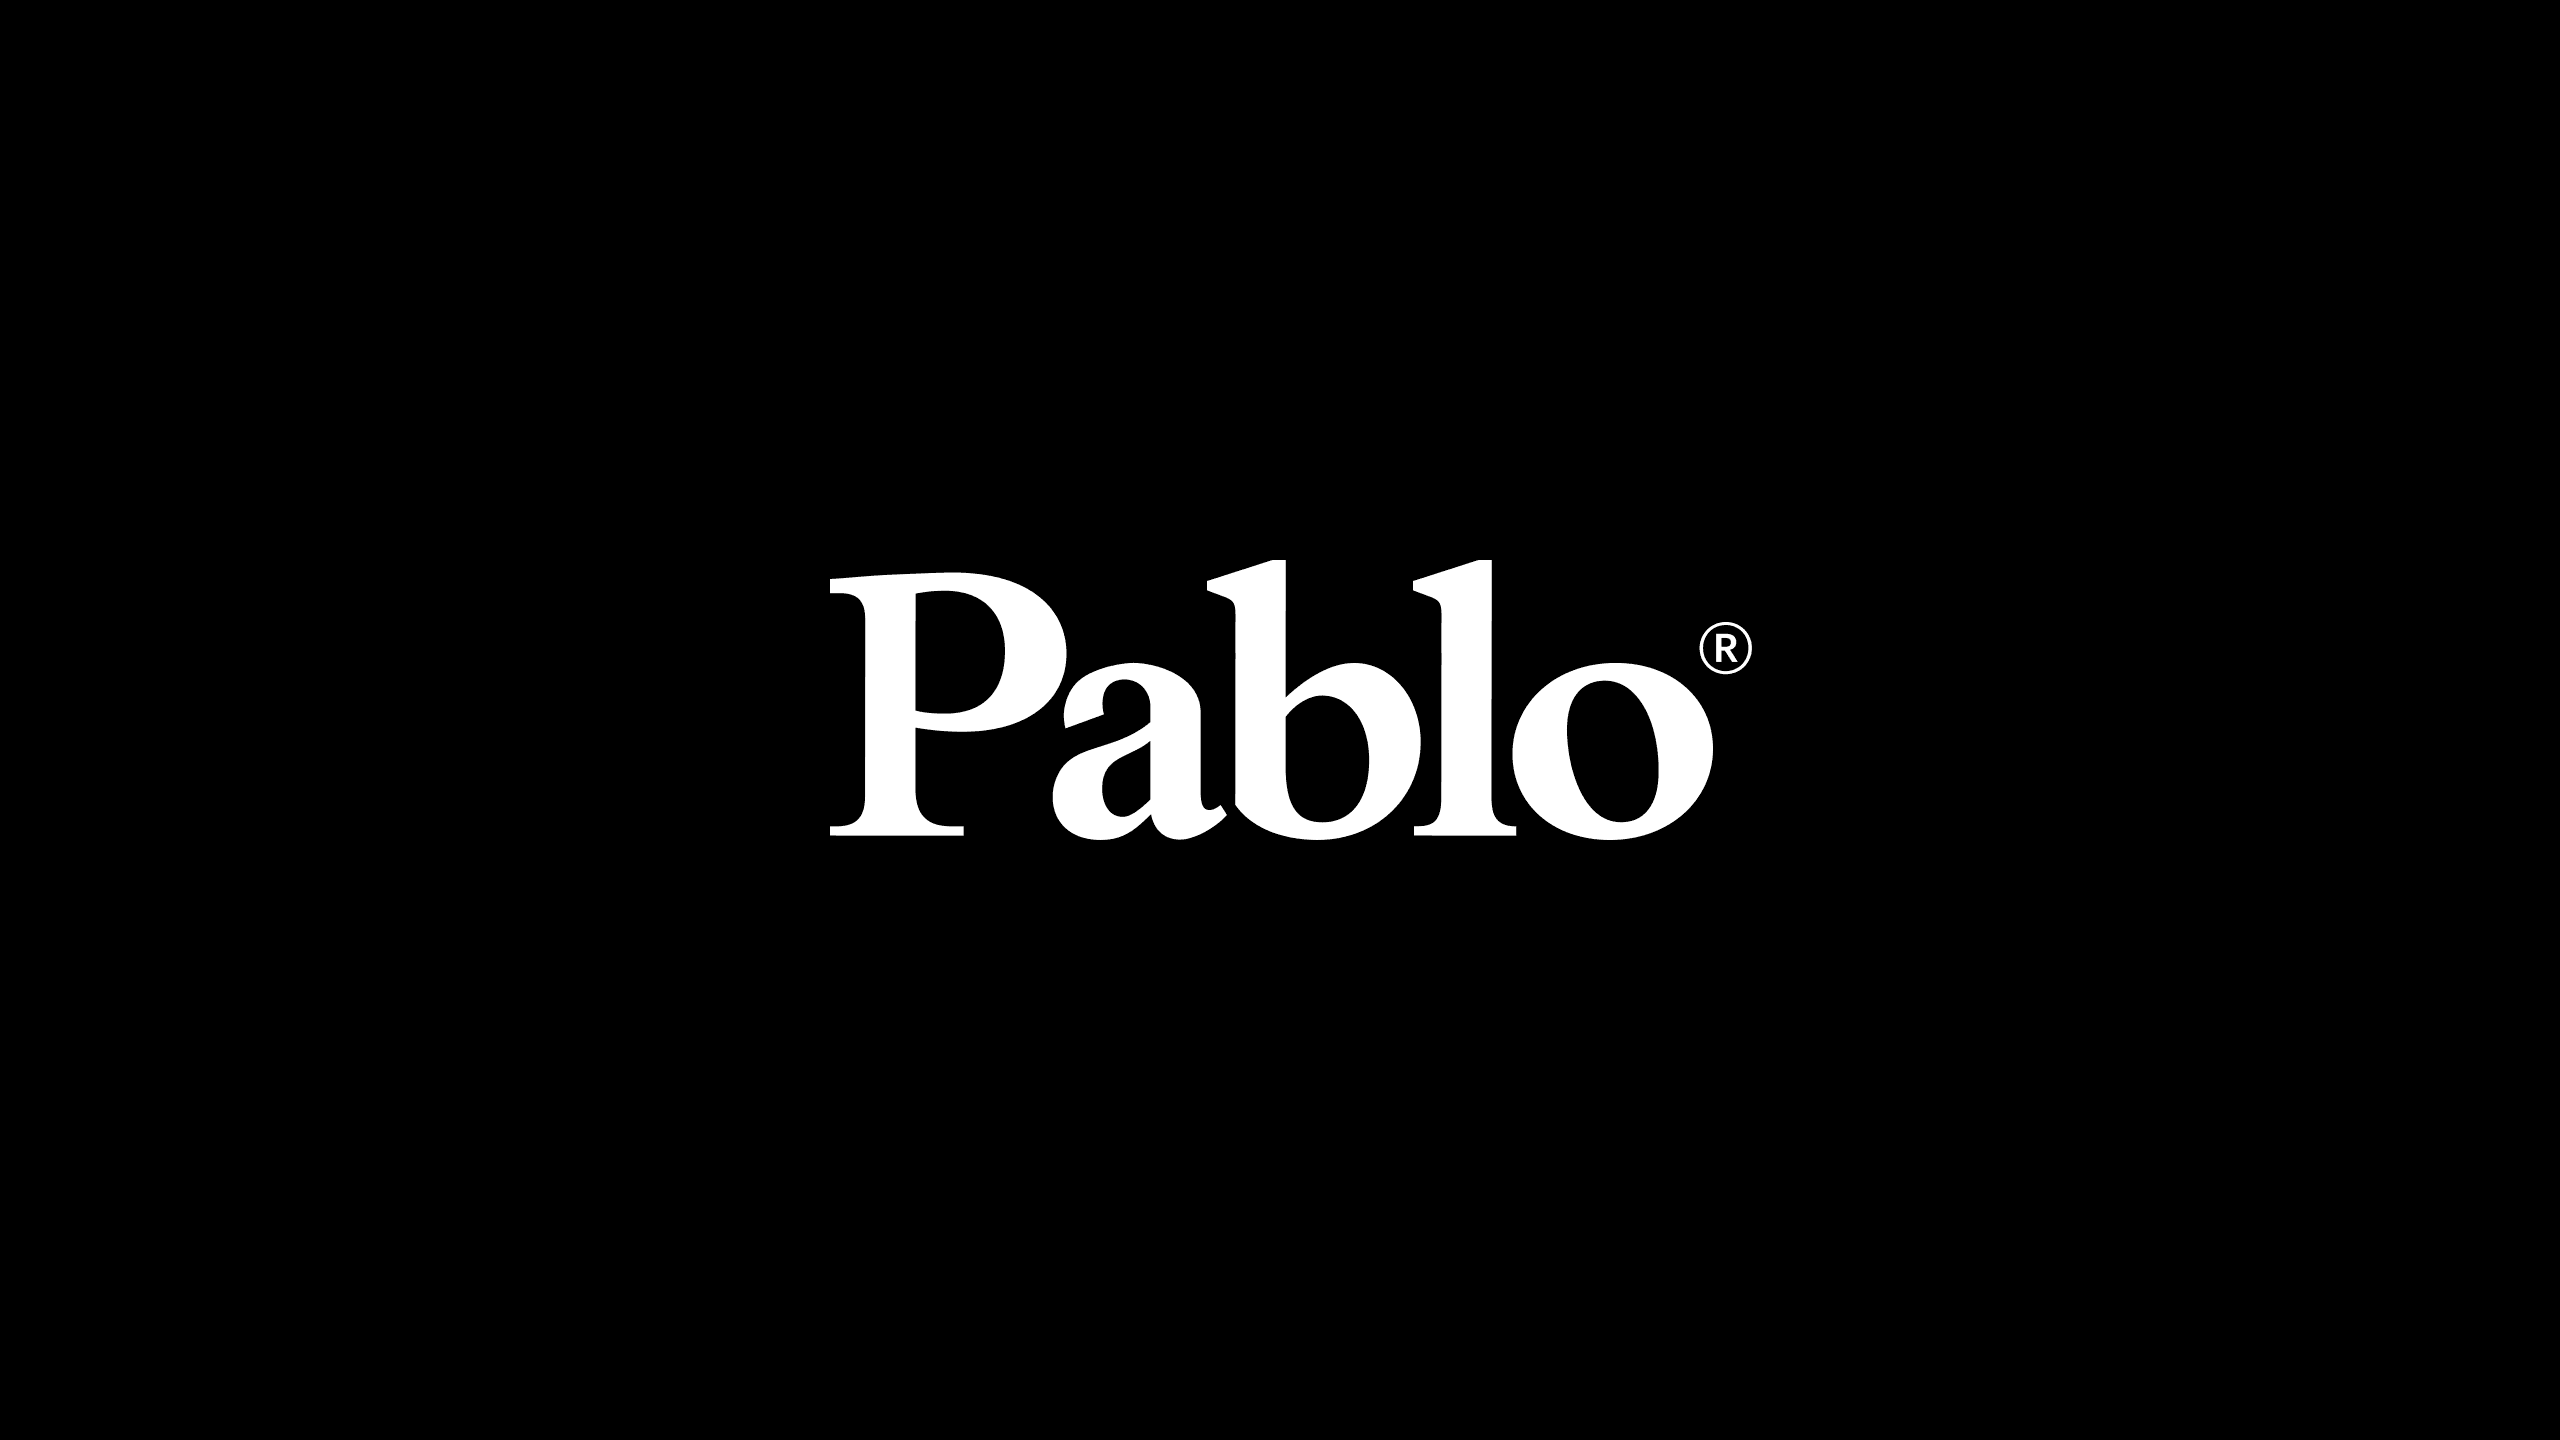 Pablo Designs White Logo on Black Background